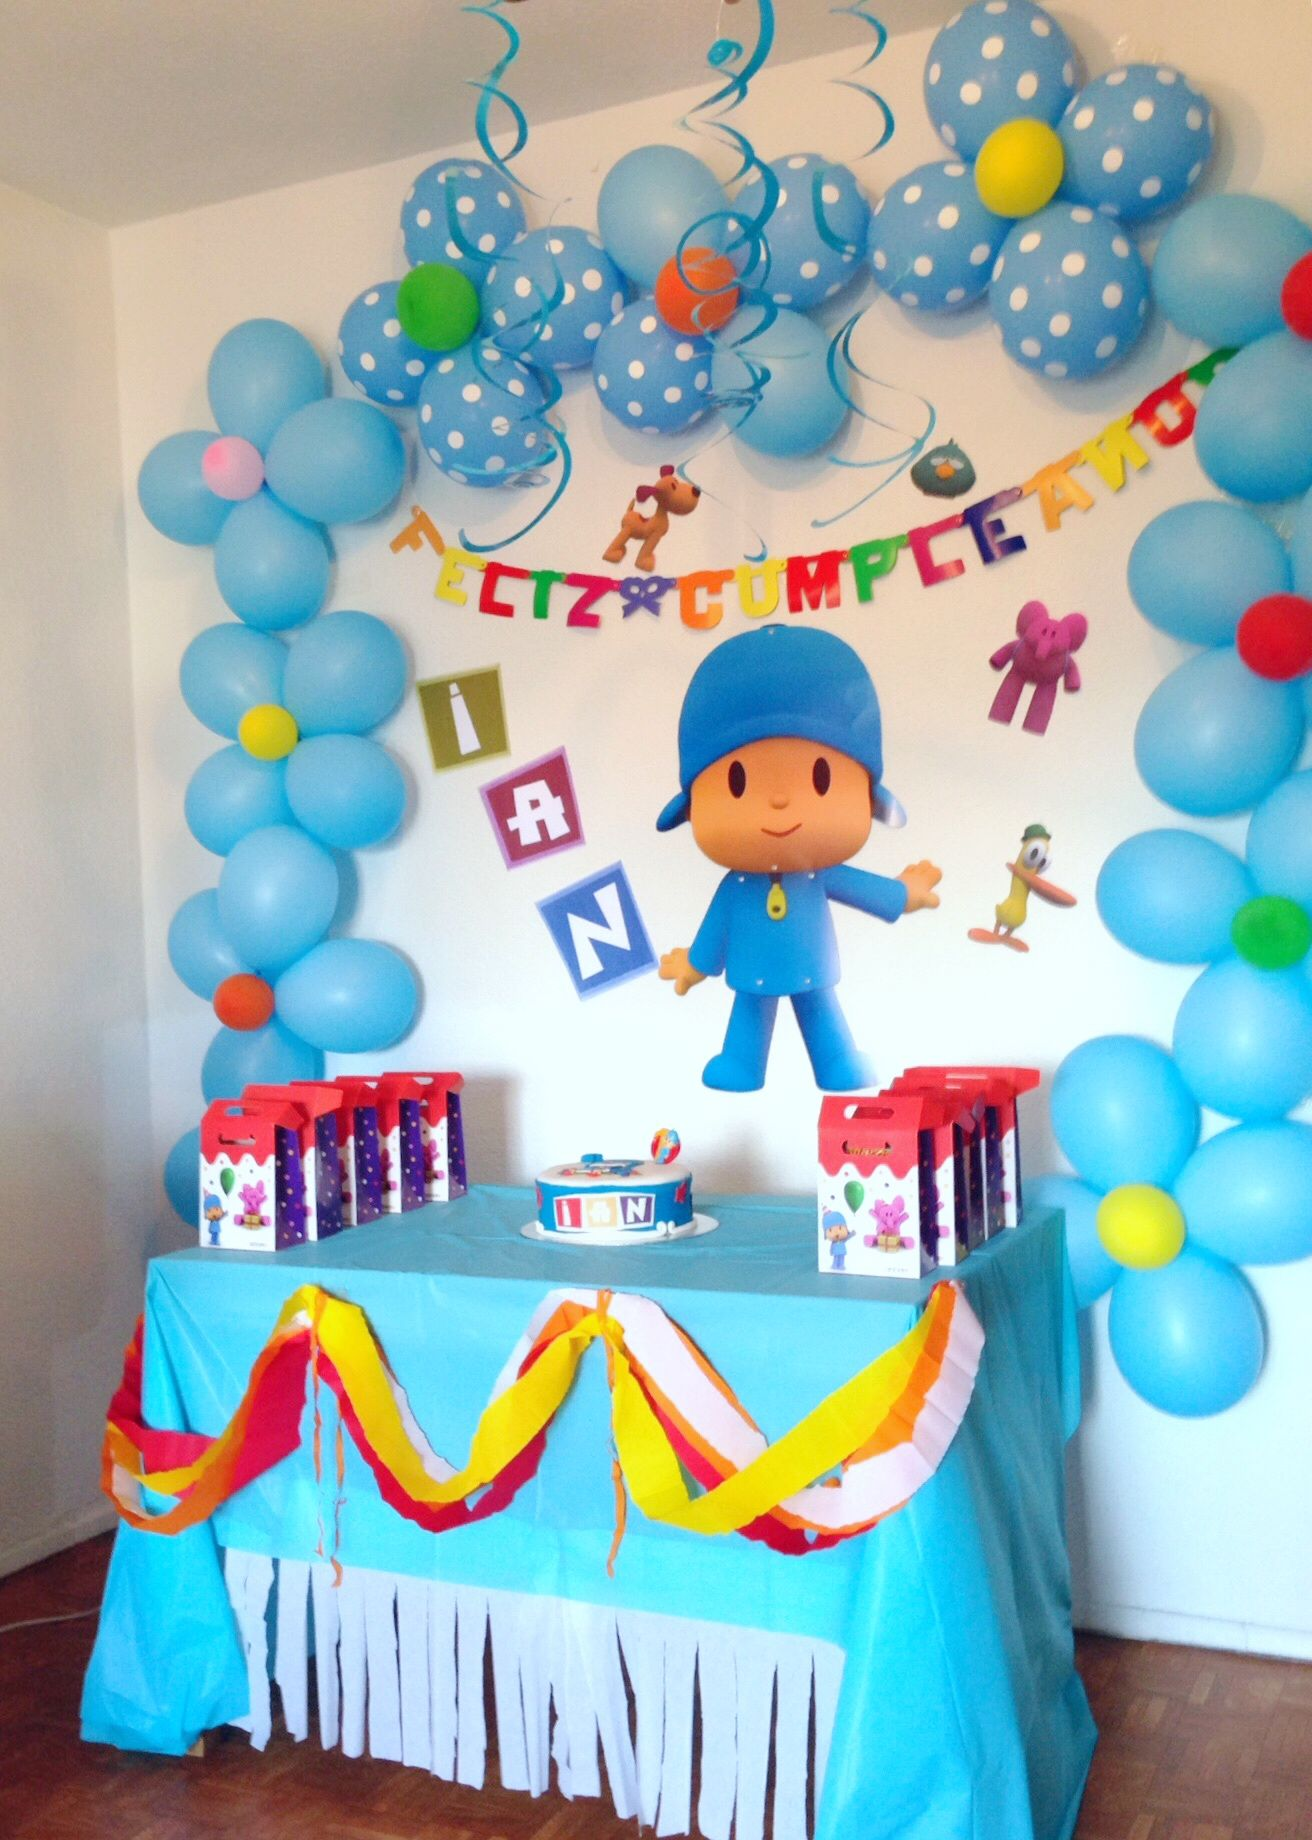 Pocoyo decoraci n cumplea os infantil ideas birthday party - Decoracion mesas cumpleanos infantiles ...